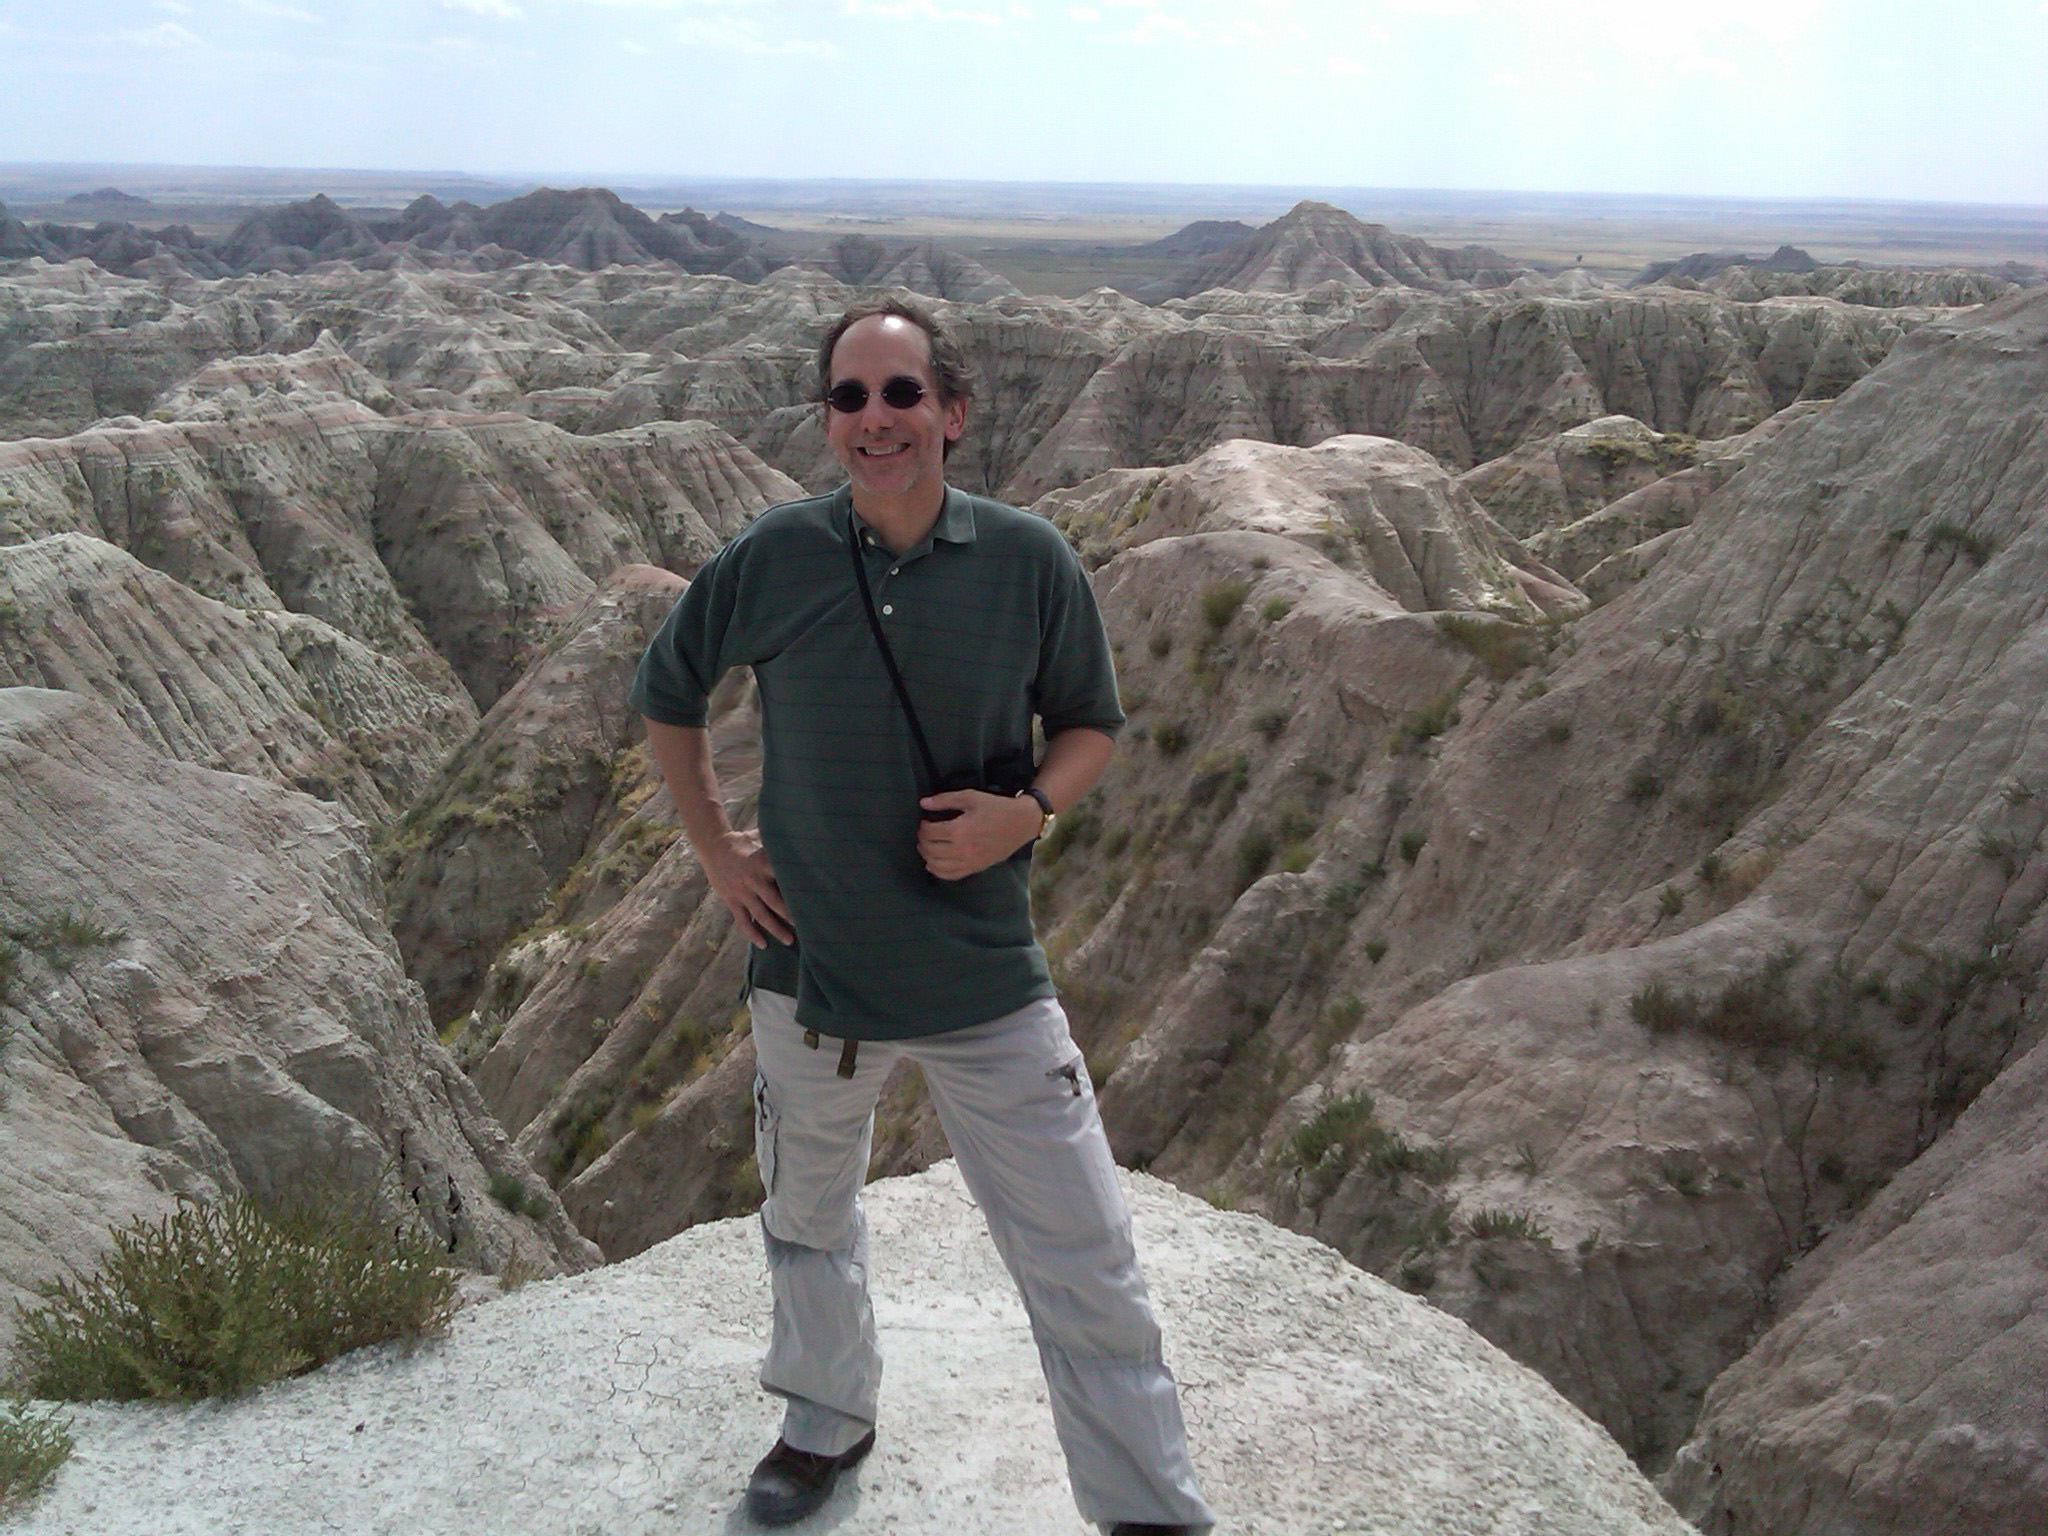 badlands-national-park-september-2010